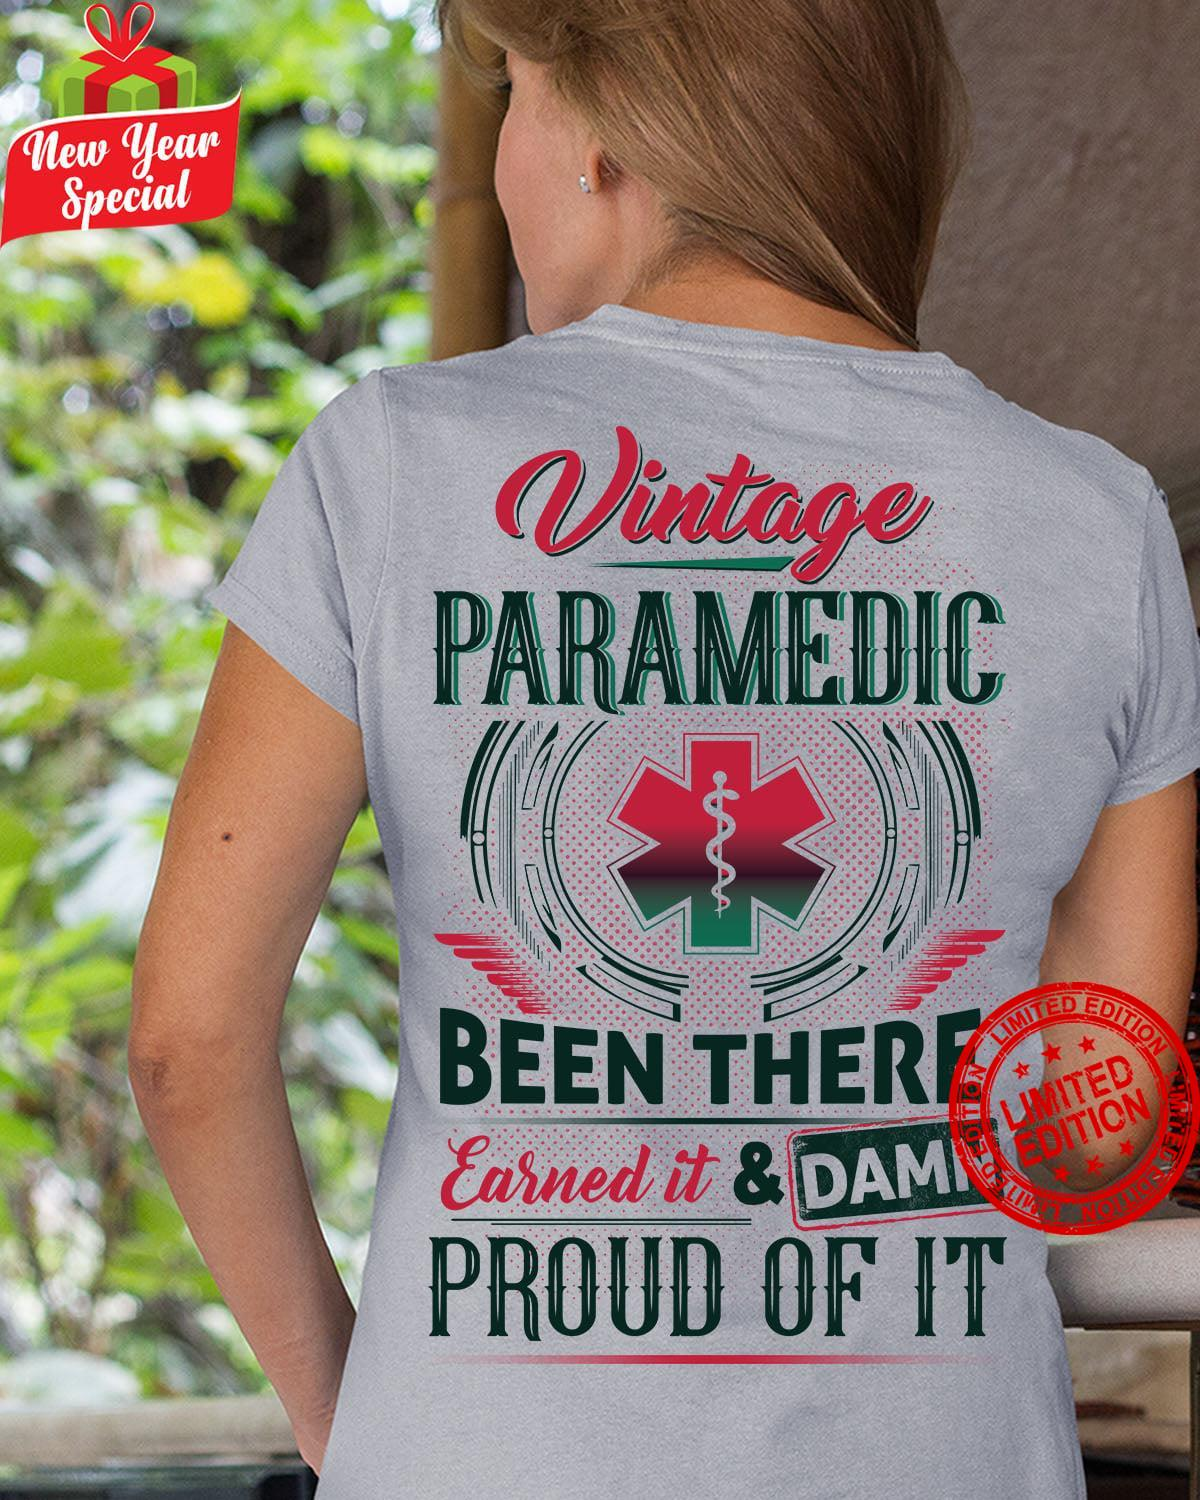 Vintage Paramedic Been There Earned It & Damn Proud Of It Shirt